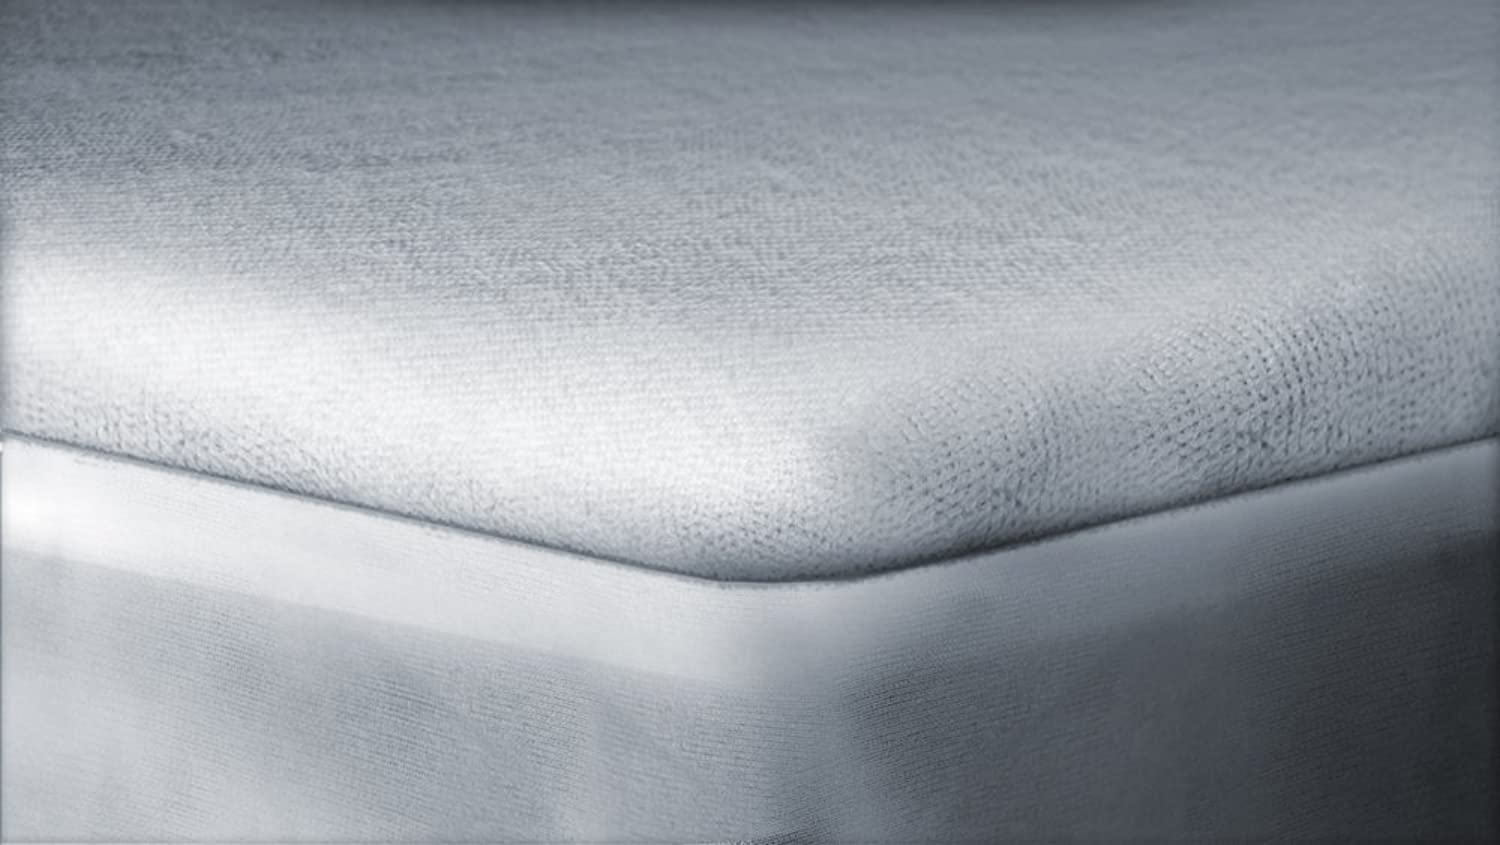 Rajlinen Luxury Terry Cotton Waterproof Mattress Predector Queen-XL Size (+19 Inch) Pocket Depth White Solid Fitted Style Breathable Waterproof Membrane SafeRest Premium